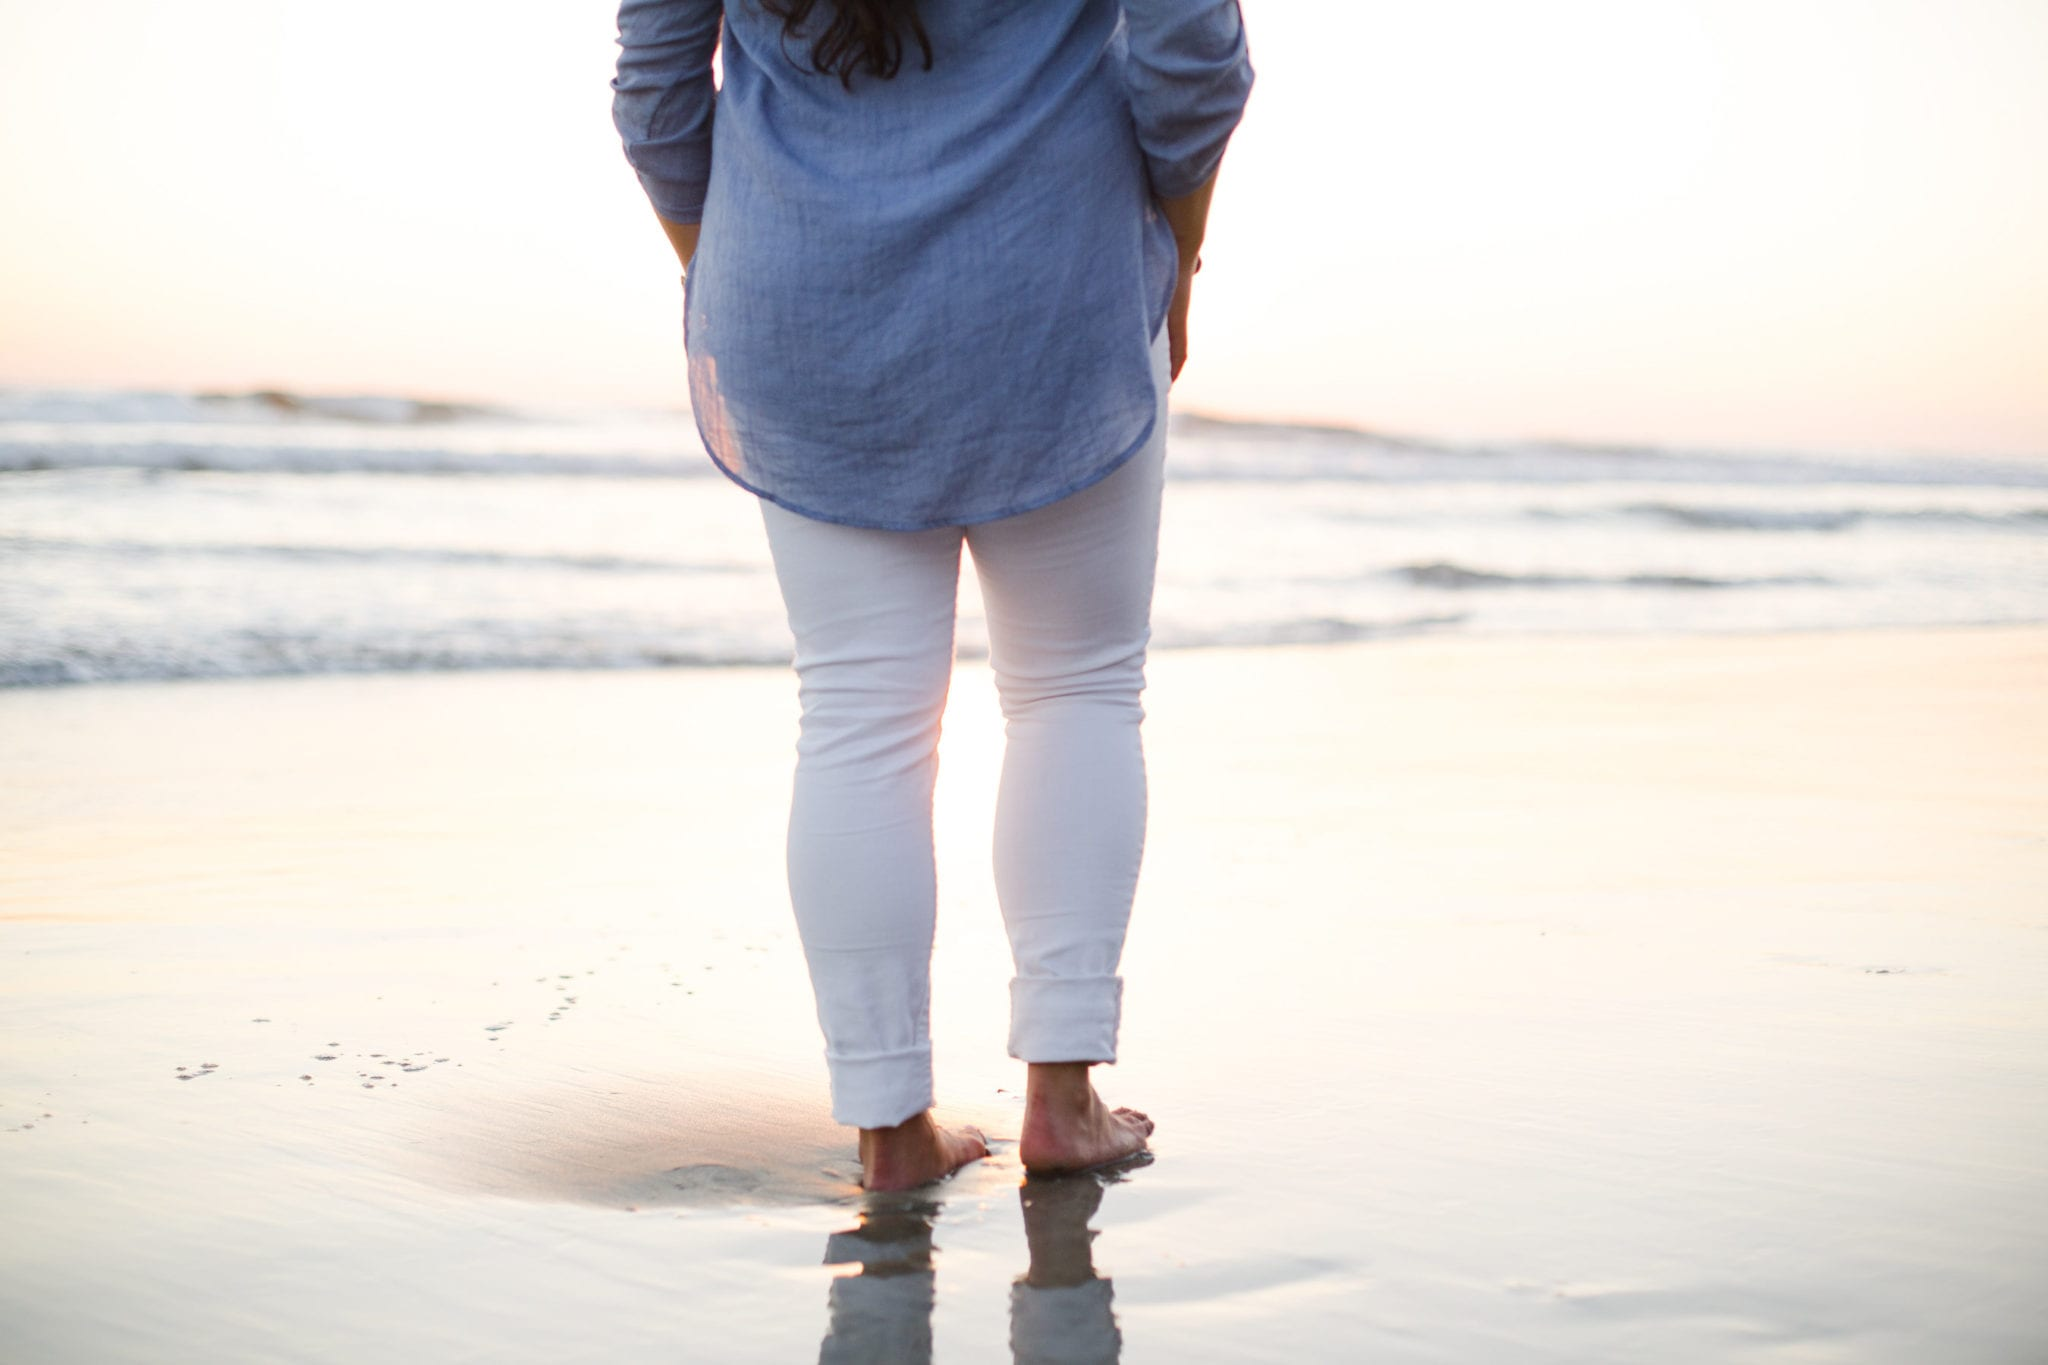 View More: http://melindahumphriesphotography.pass.us/session2 | Nordstrom blue linen blouse styled by popular San Diego fashion blogger, The Brunette & The Beach